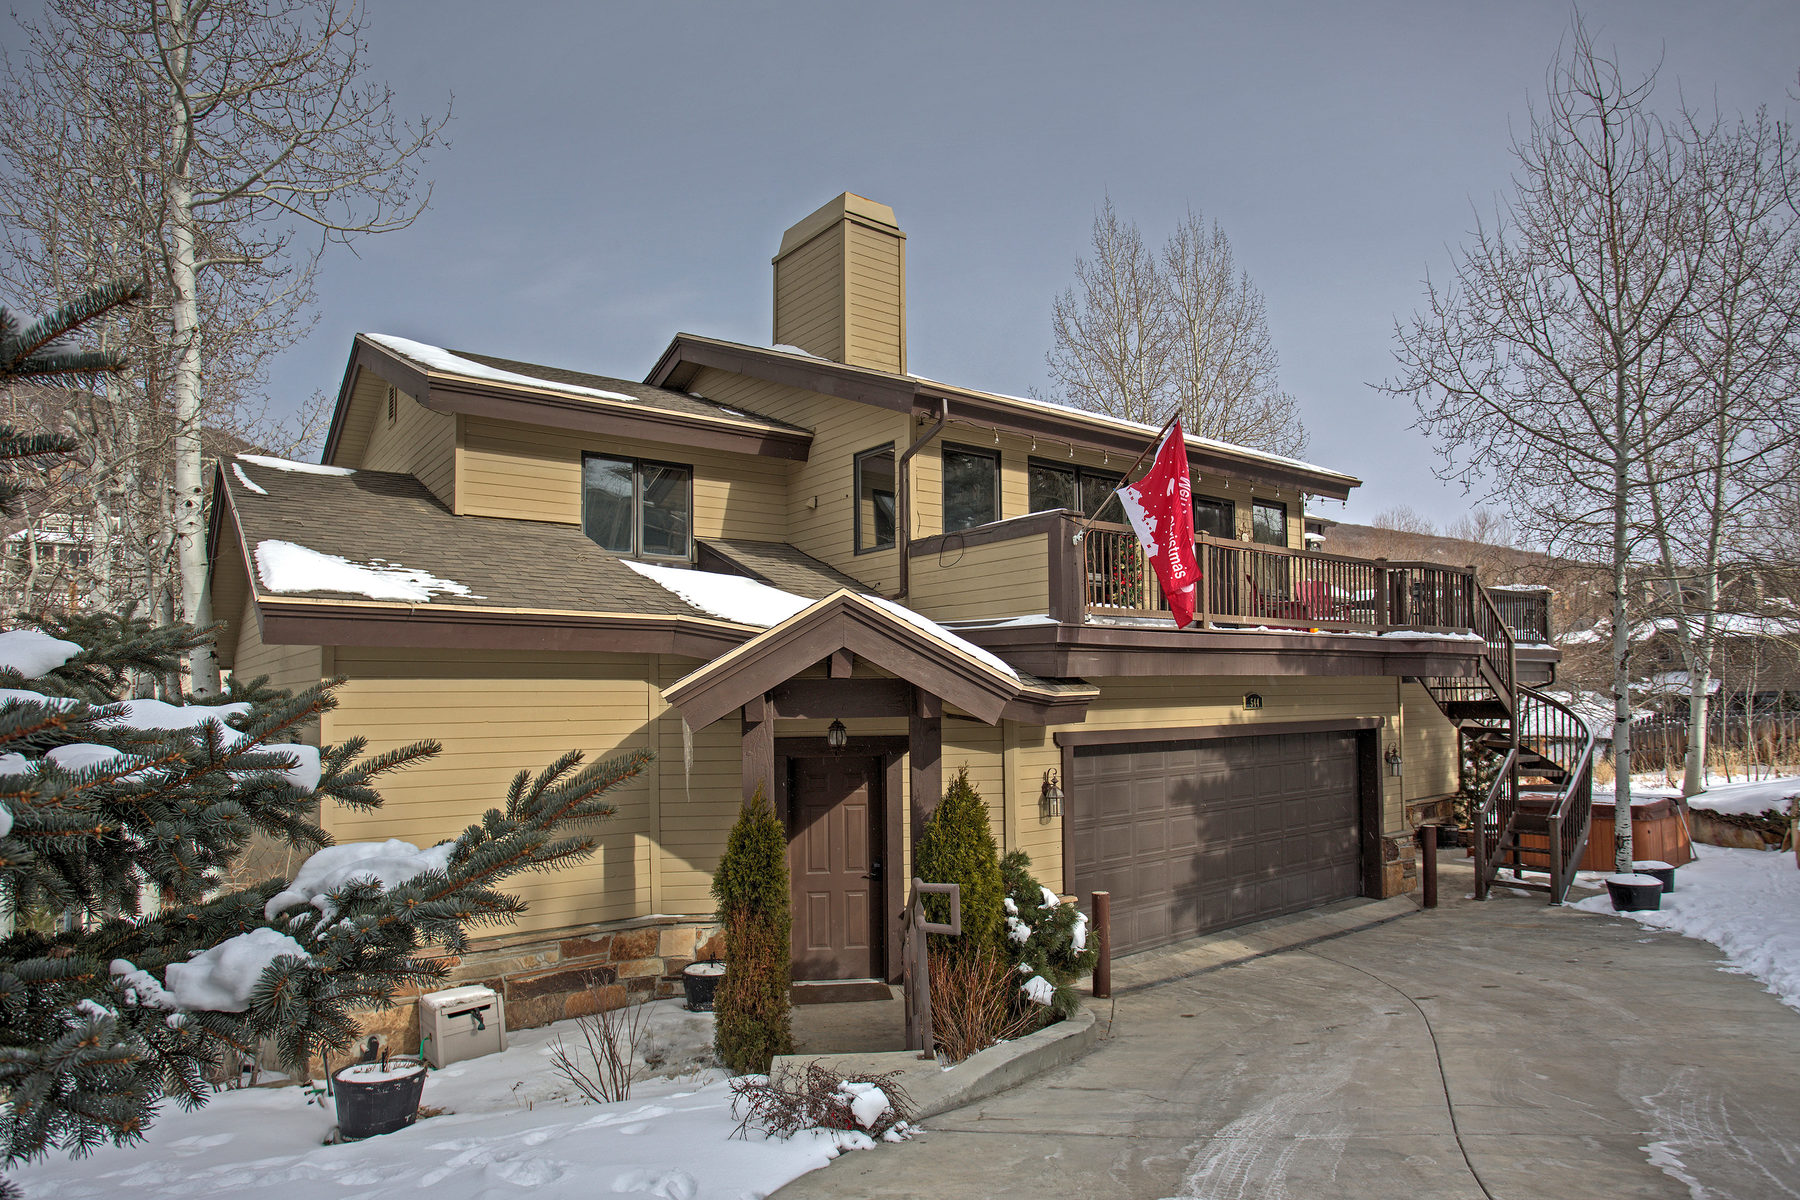 共管物業 為 出售 在 Ultra Rare Condo Optimally Situated Between Old Town & Deer Valley! 544 Deer Valley Loop #A Park City, 猶他州, 84060 美國